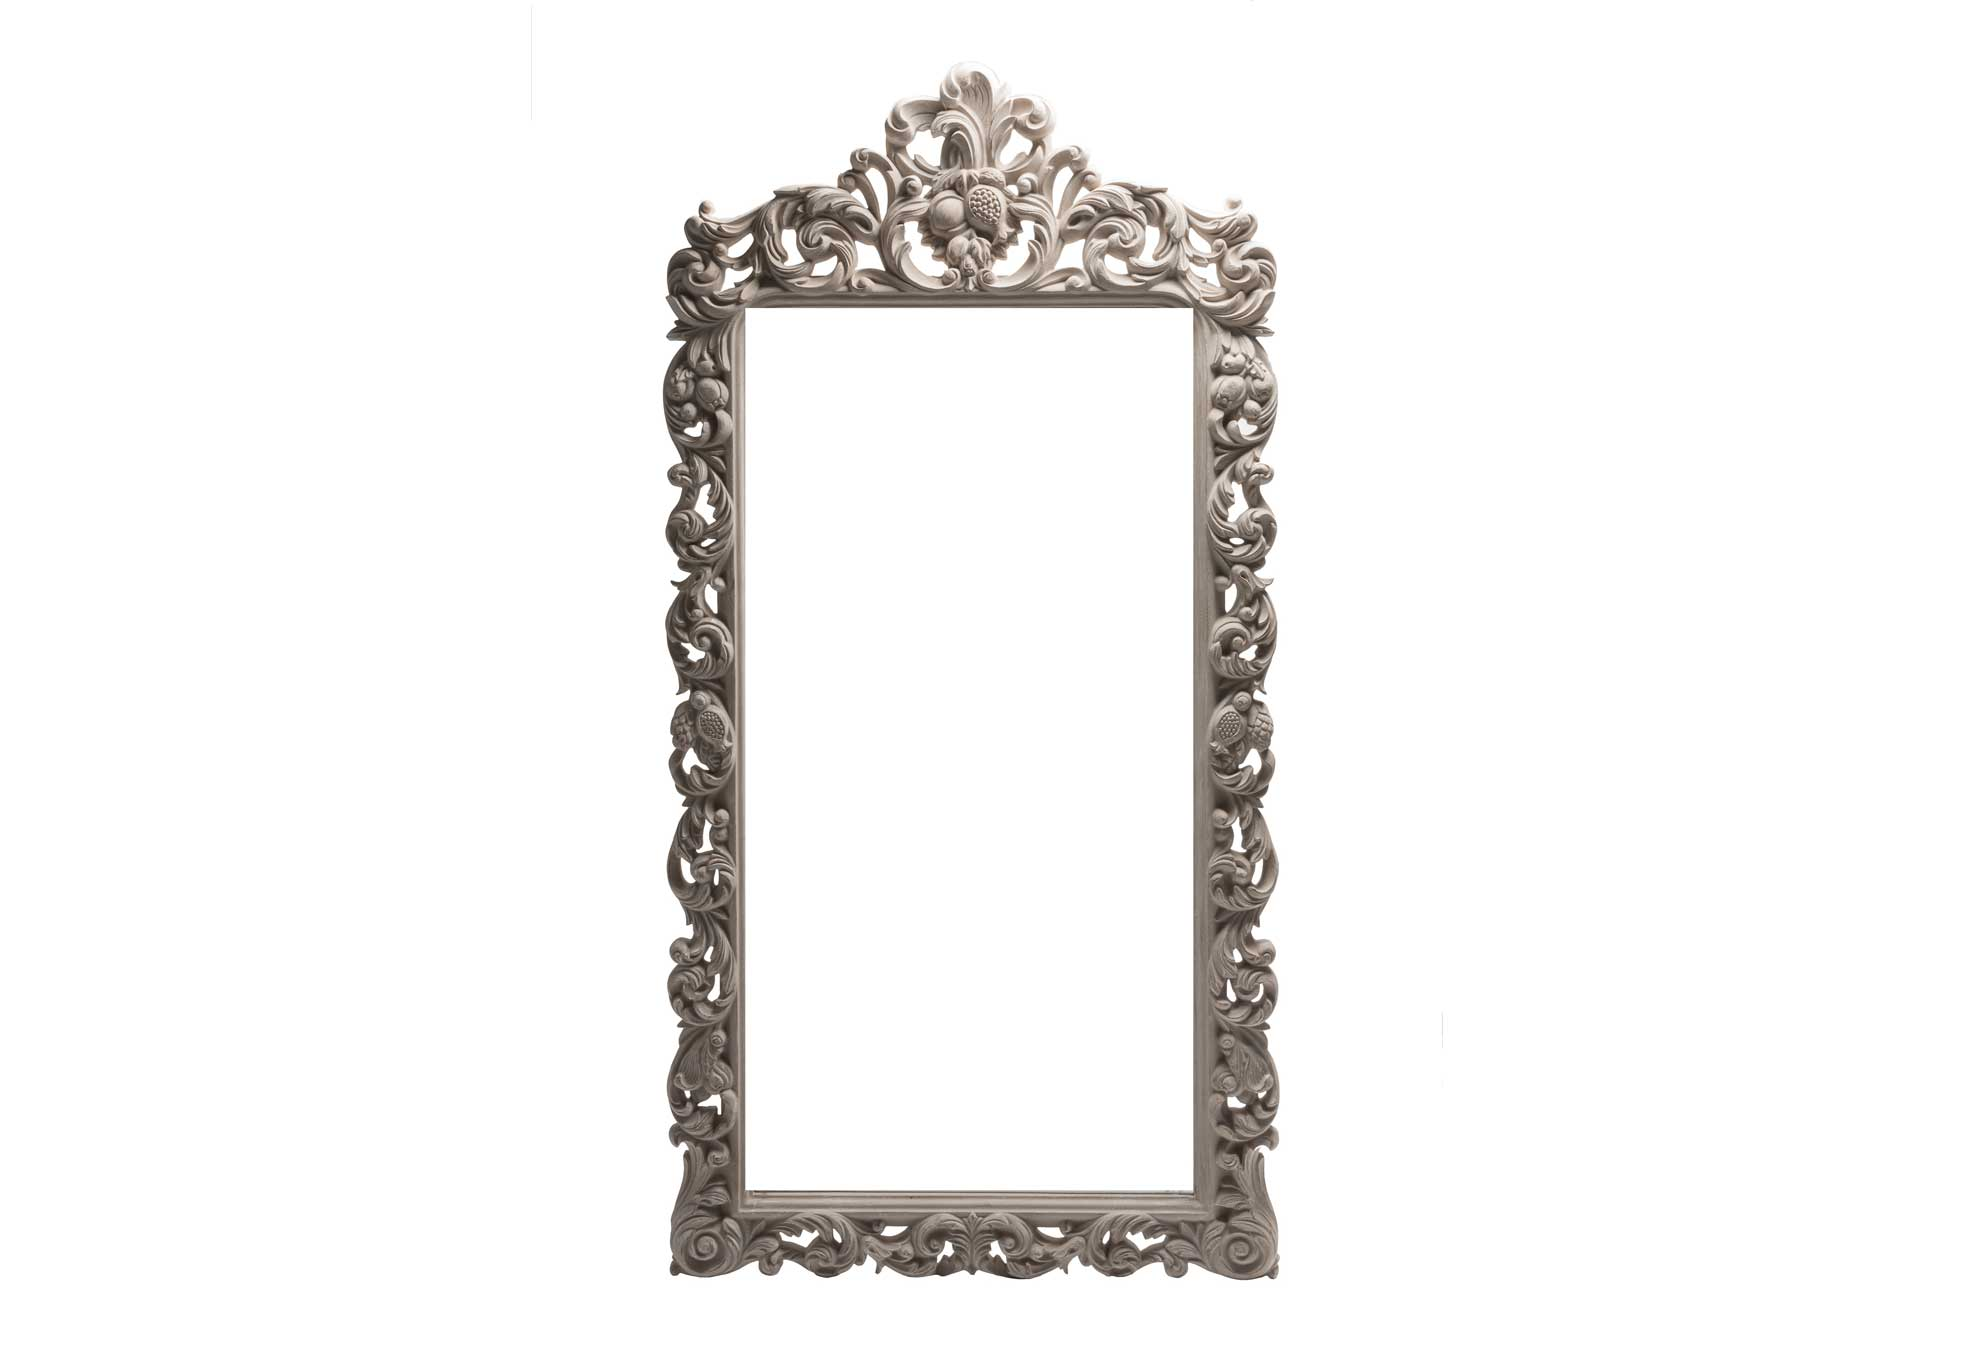 silk-estate-marquee-weddings-and-events-styling-and-hire-decore-carved-frame-mirror-2